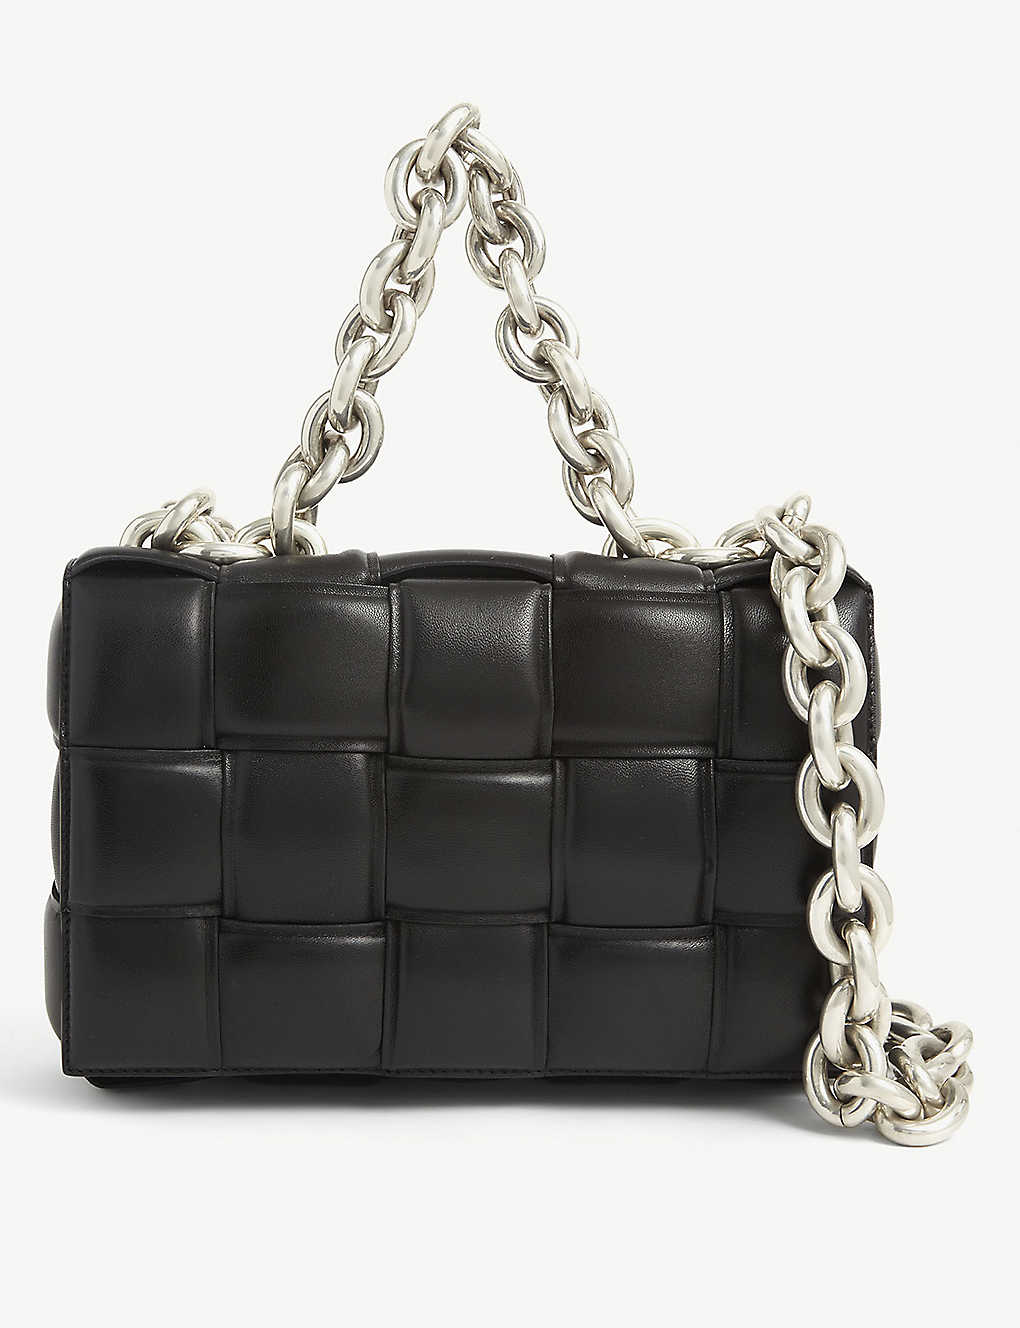 BOTTEGA VENETA:The Chain Cassette Intrecciato 皮革包袋